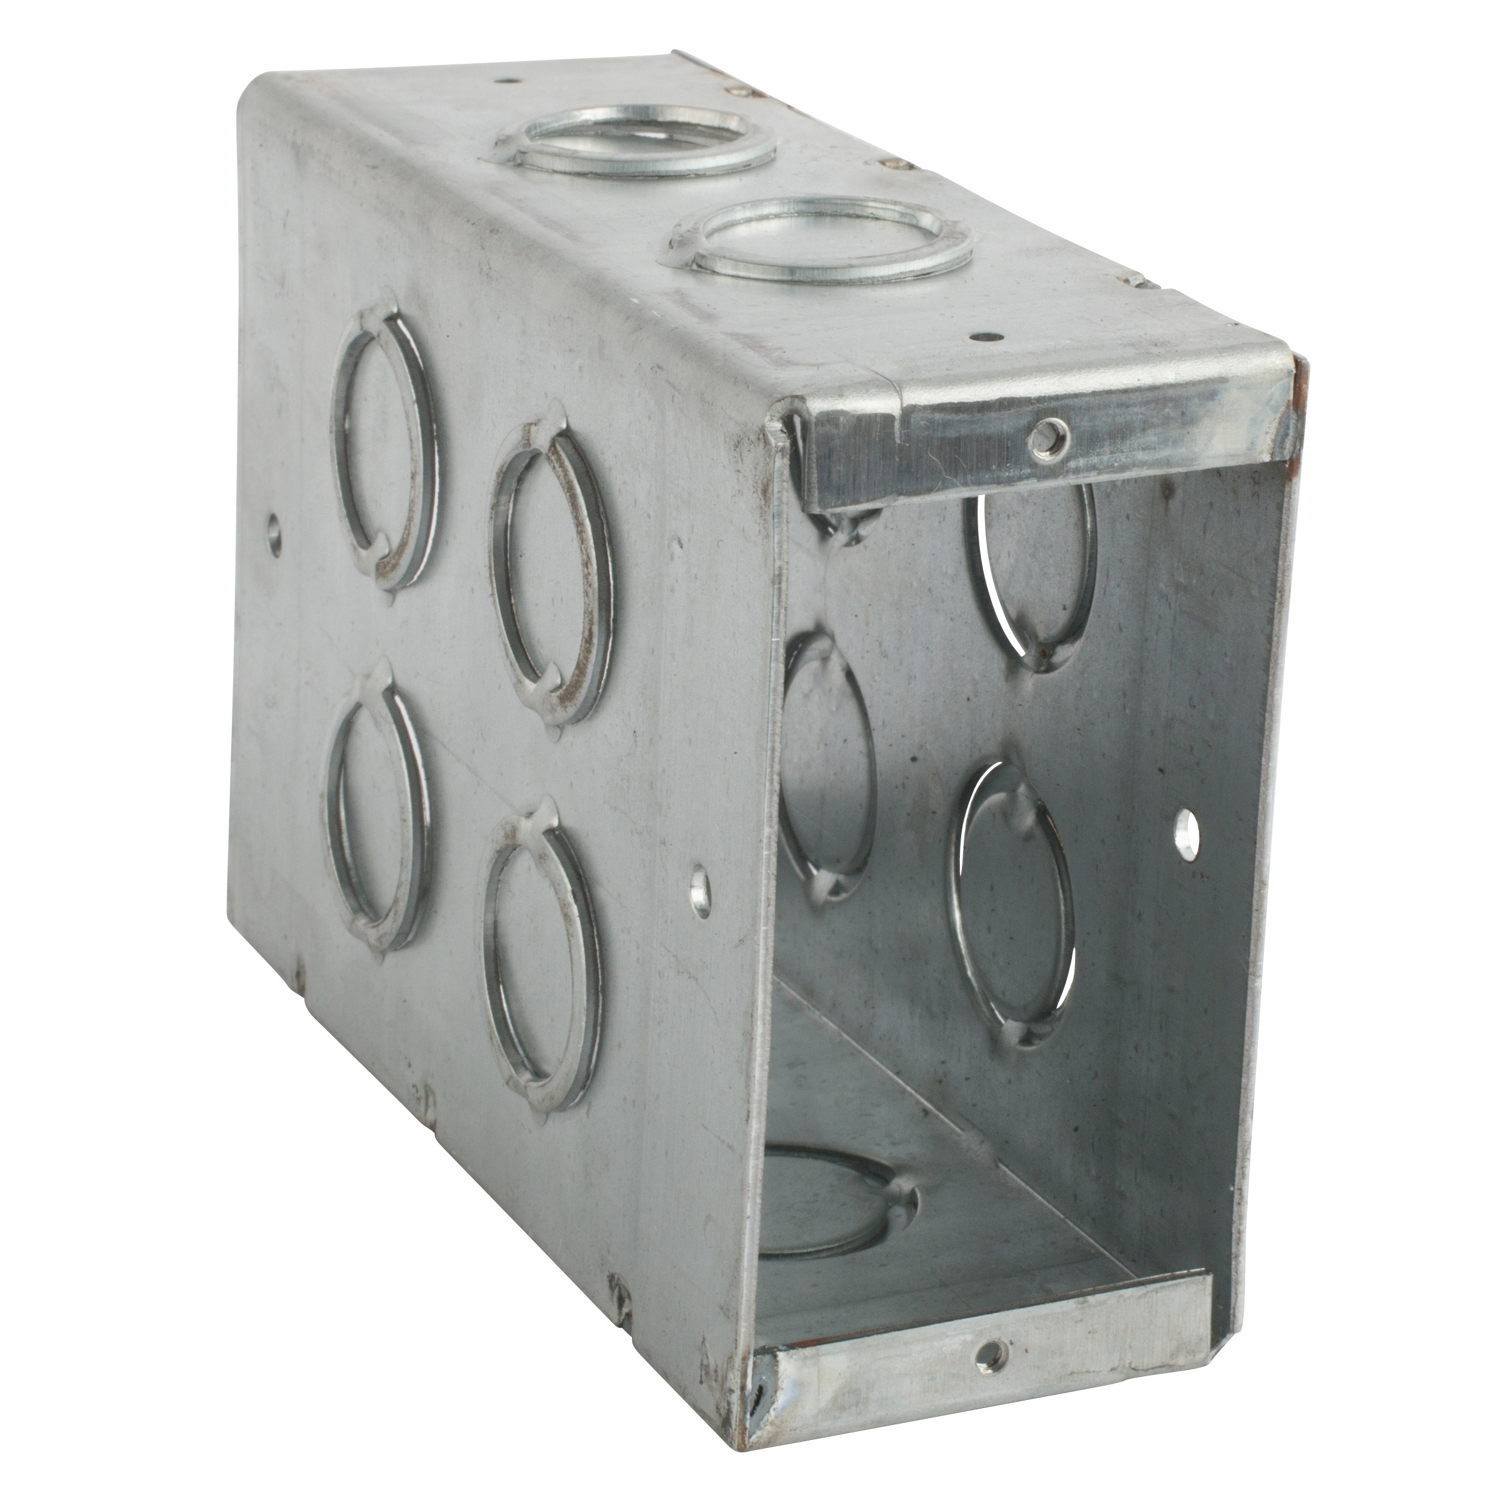 Steel City,CBTW-6,STEEL ELECTRICAL BOX